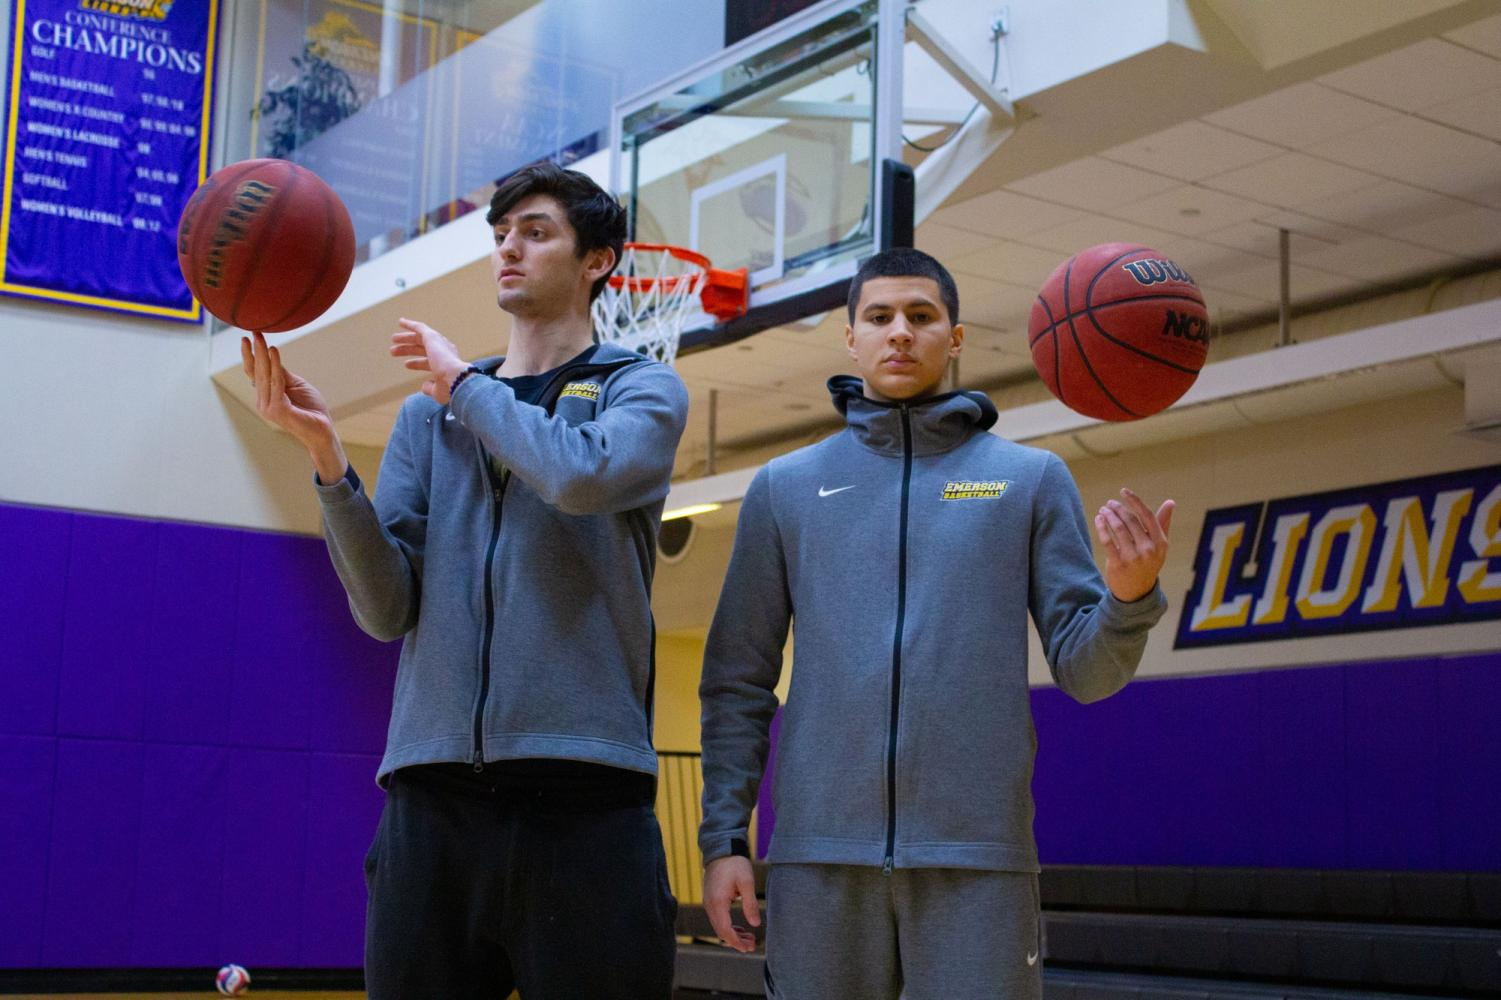 Max Davis (left) and Bryan Lupianez (right) joined the men's basketball team in late December Photo credit: Cho Yin Rachel Lo